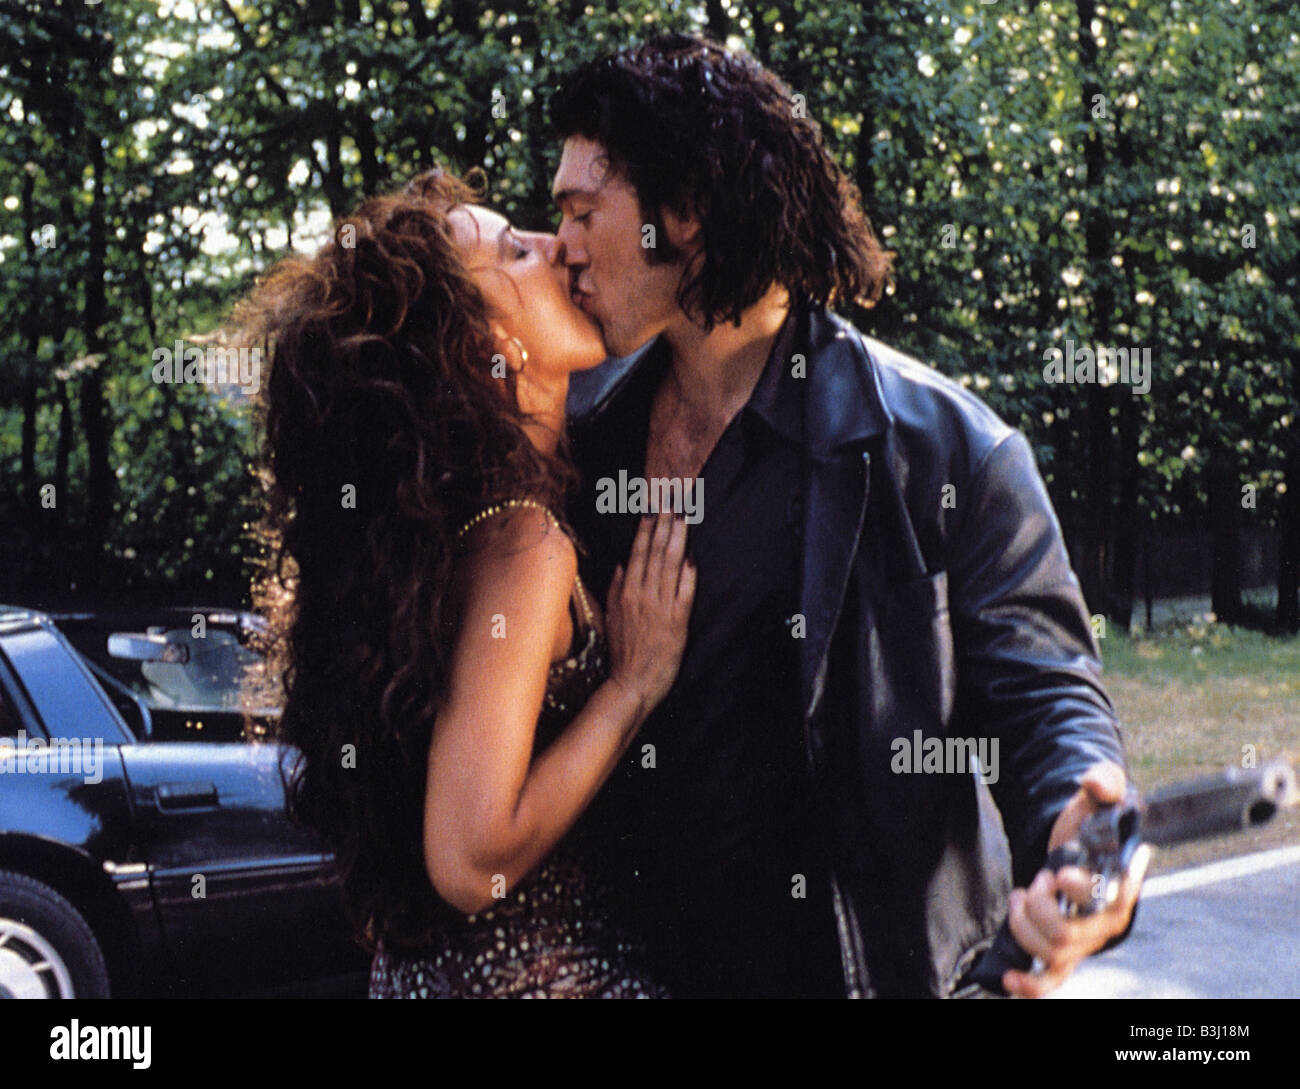 DOBERMANN  1997 PolyGram film with Vincent Cassel and Monica Belluci - Stock Image